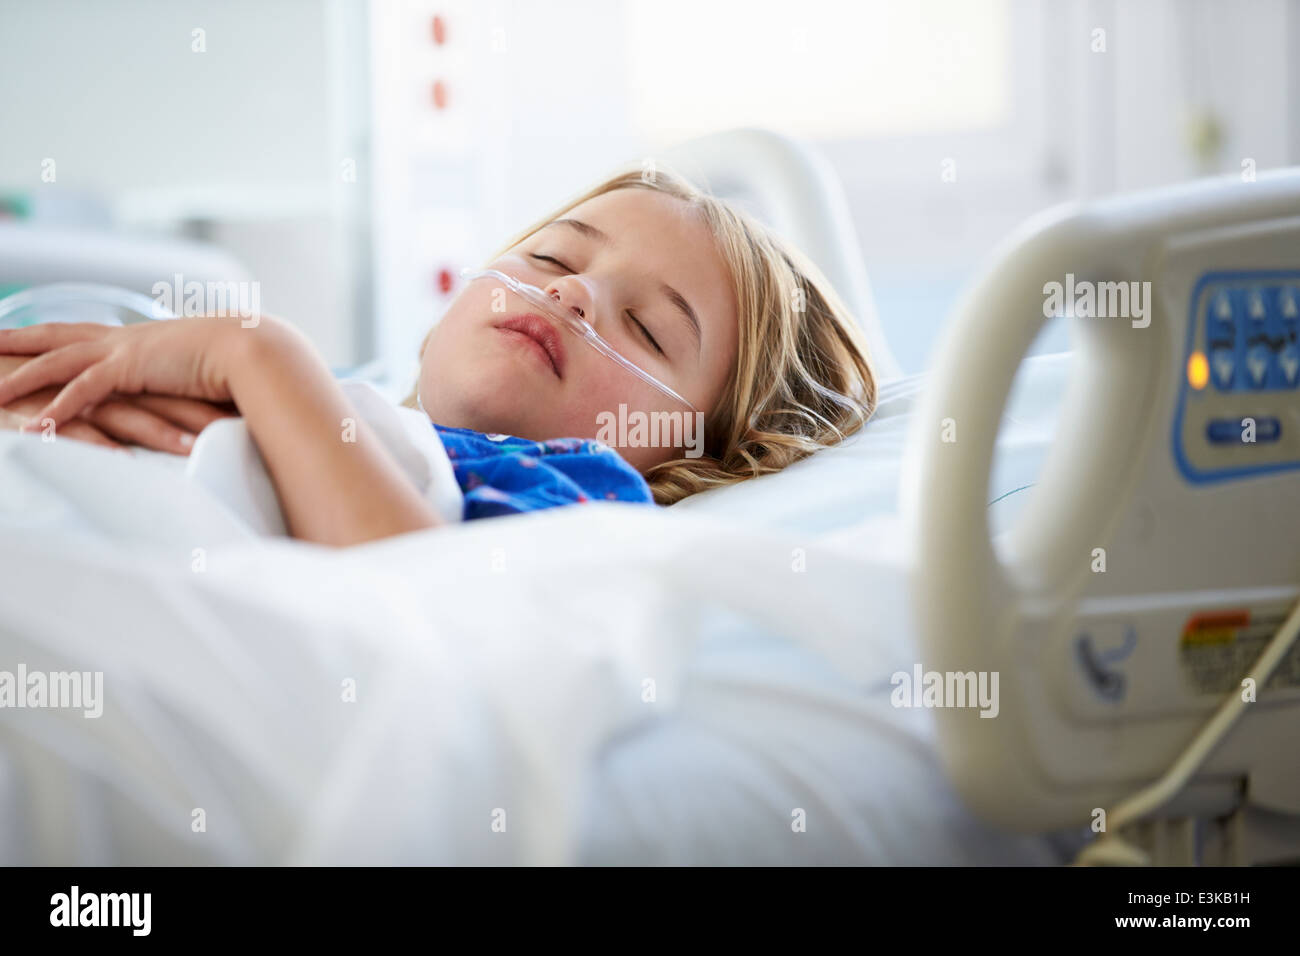 Young Girl Sleeping In Intensive Care Unit - Stock Image